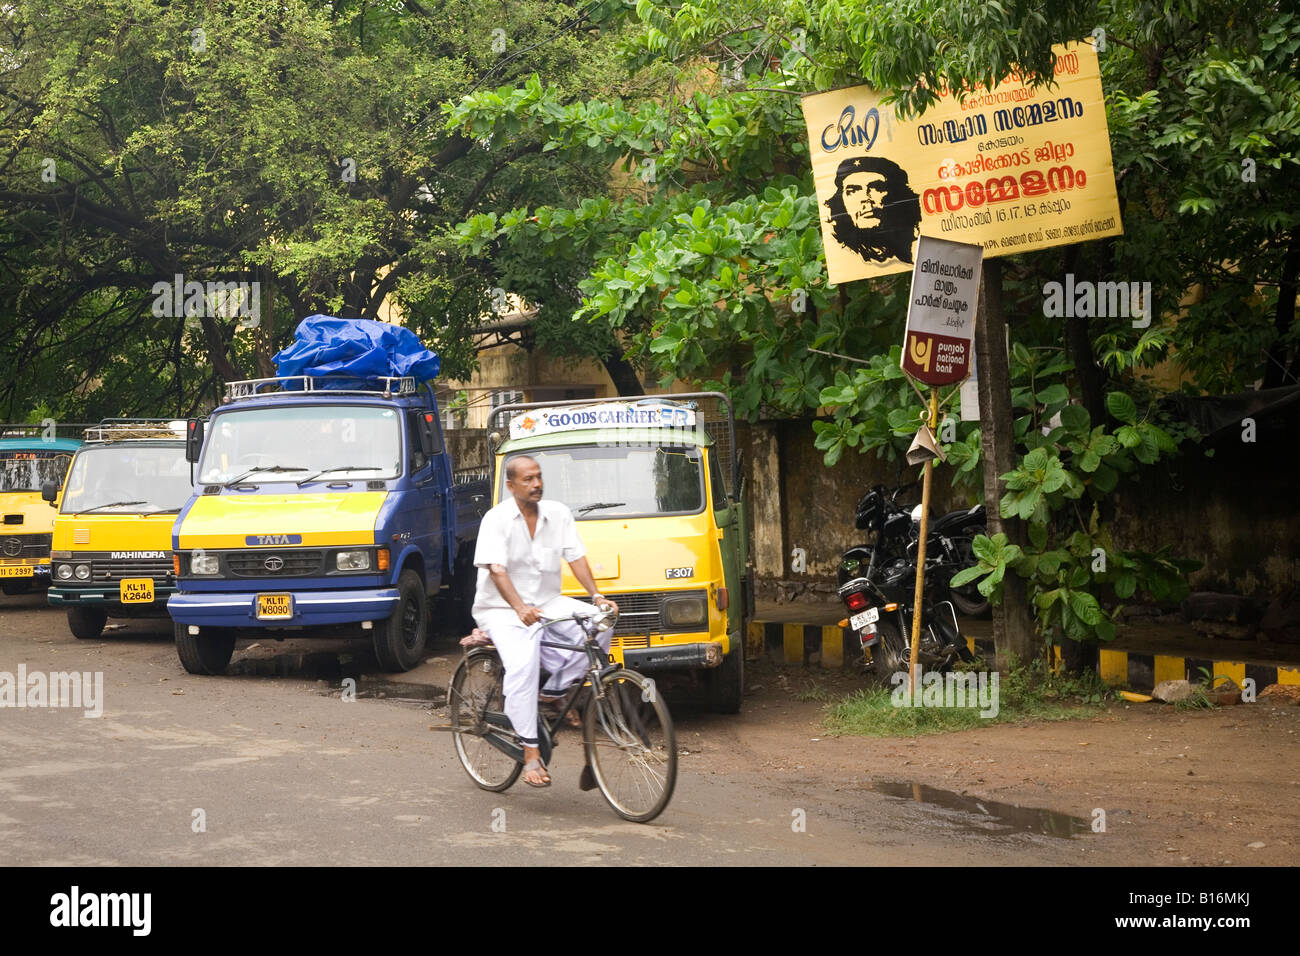 Trucks park near to the Big Bazar Road in Kozhikode. A man in a dhoti cycles past the parked vehicles. - Stock Image